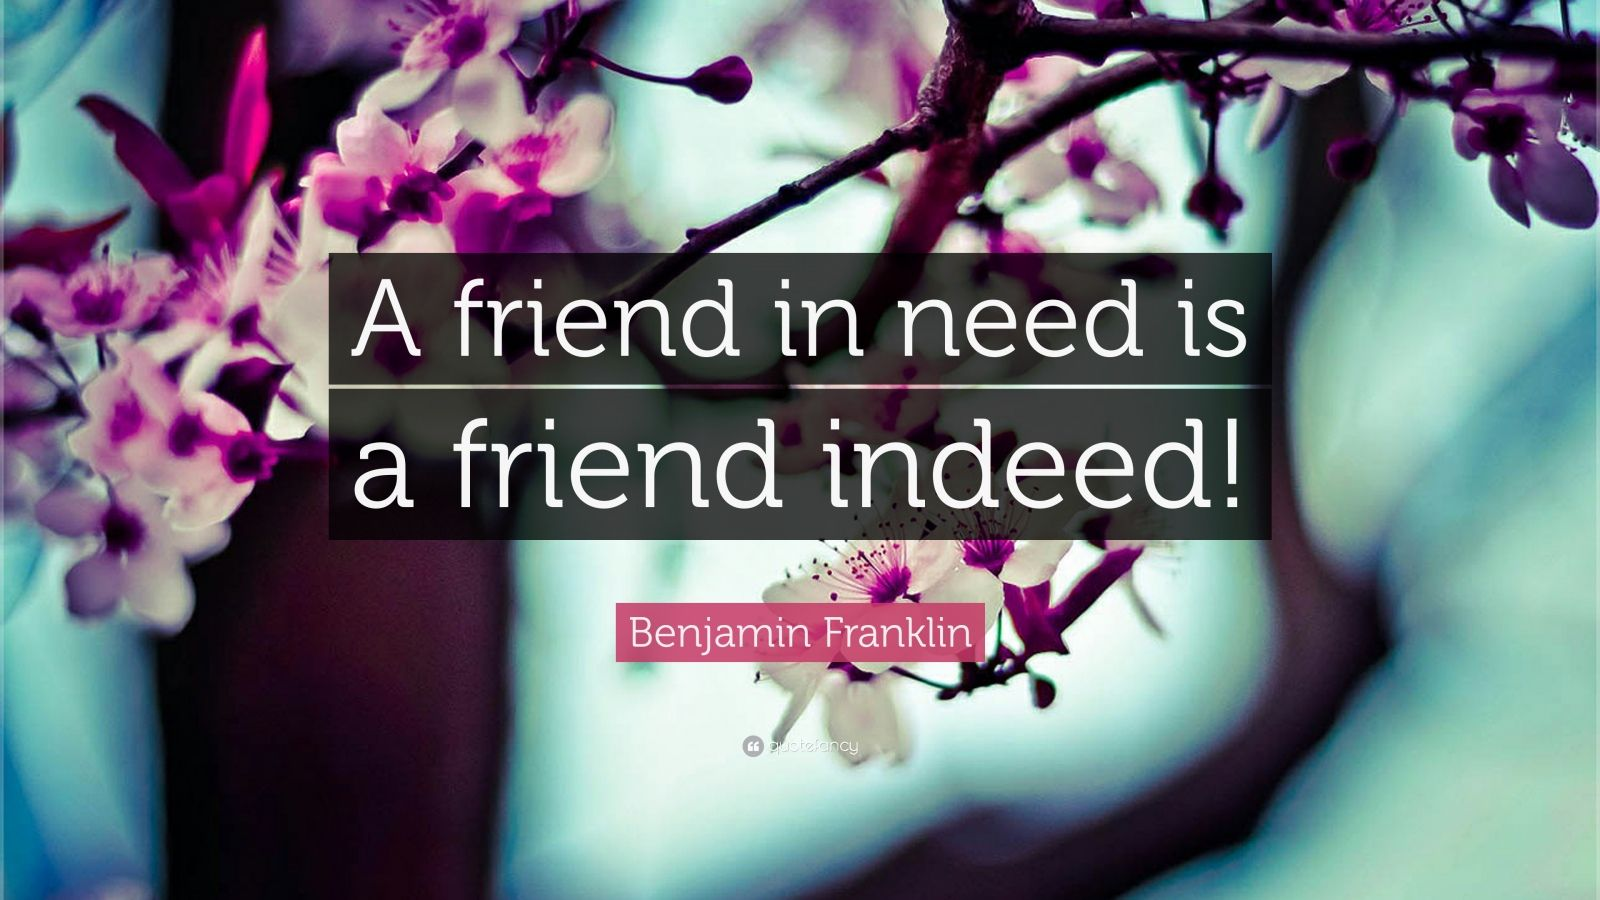 friend in deed is a friend in need essays This proverb means that 'a friend who helps his friend in need is a real friend' the proverb could be taken to mean that 'friends rely on each other' if someone is.